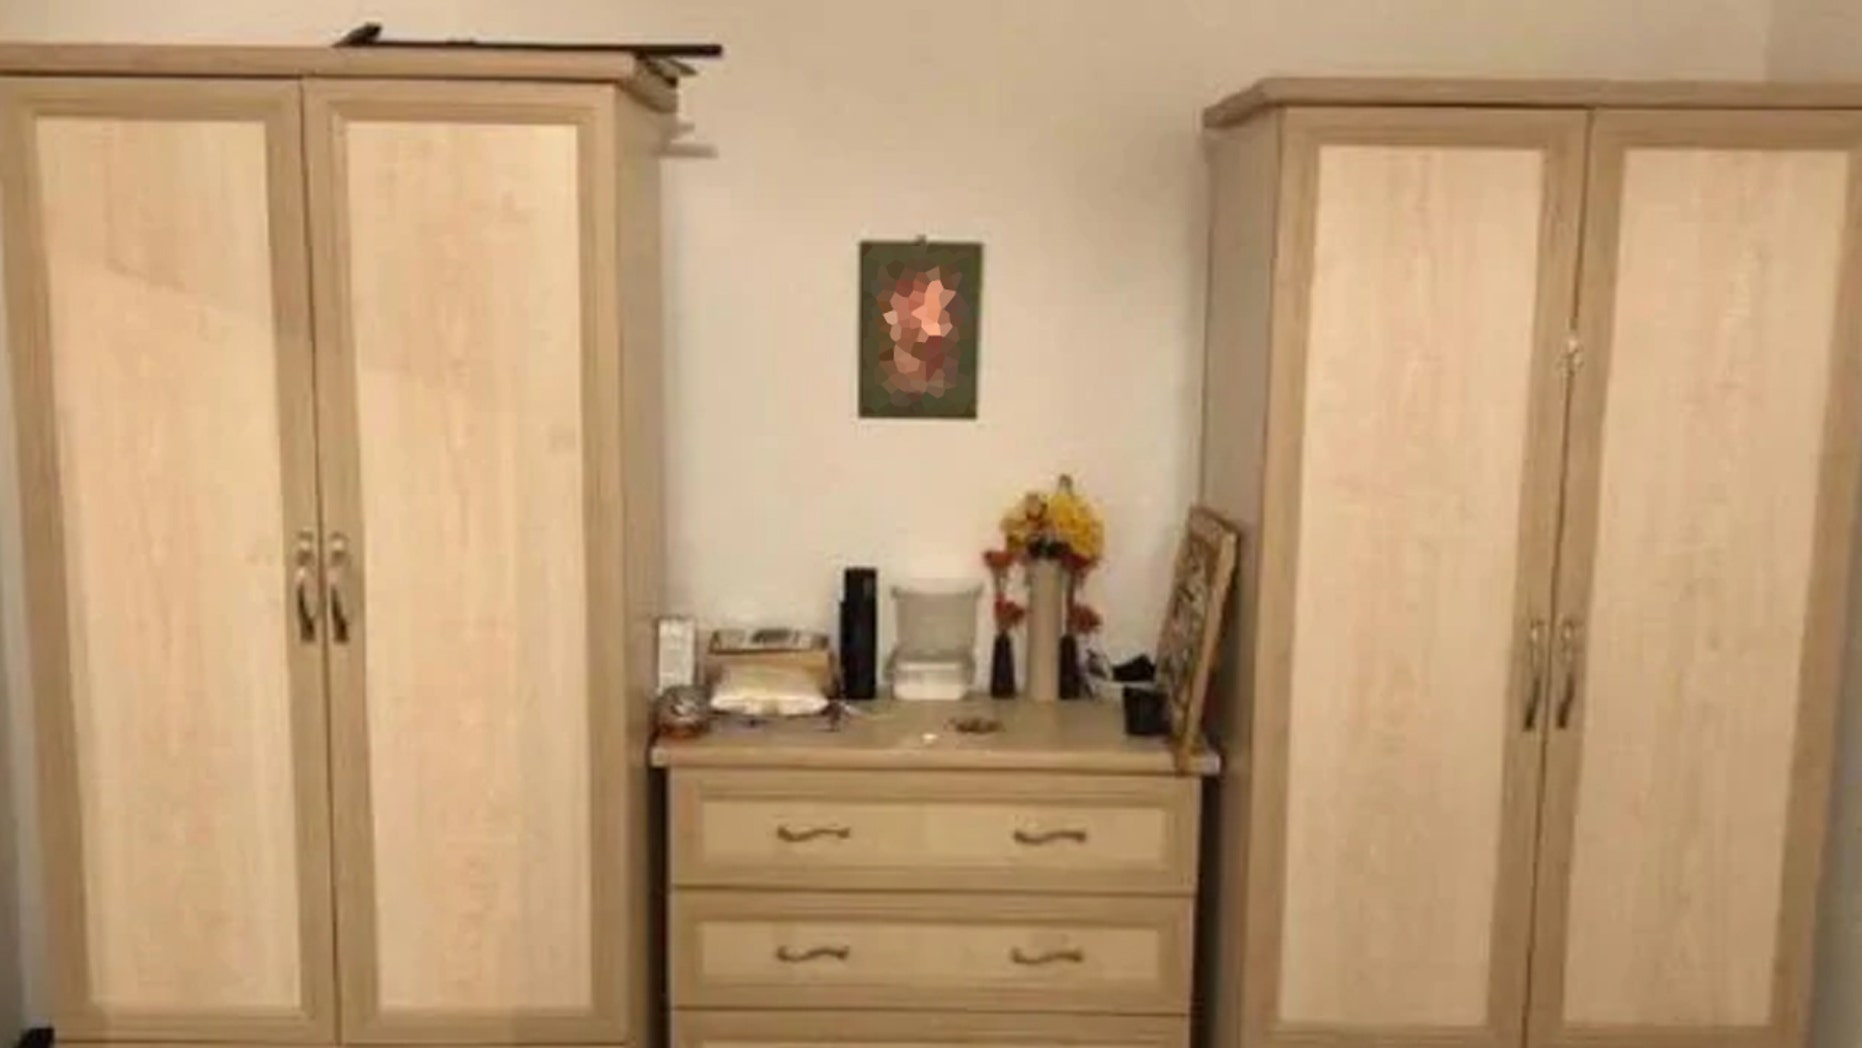 Woman Selling Furniture Online Accidentally Shares Photo Of Naked